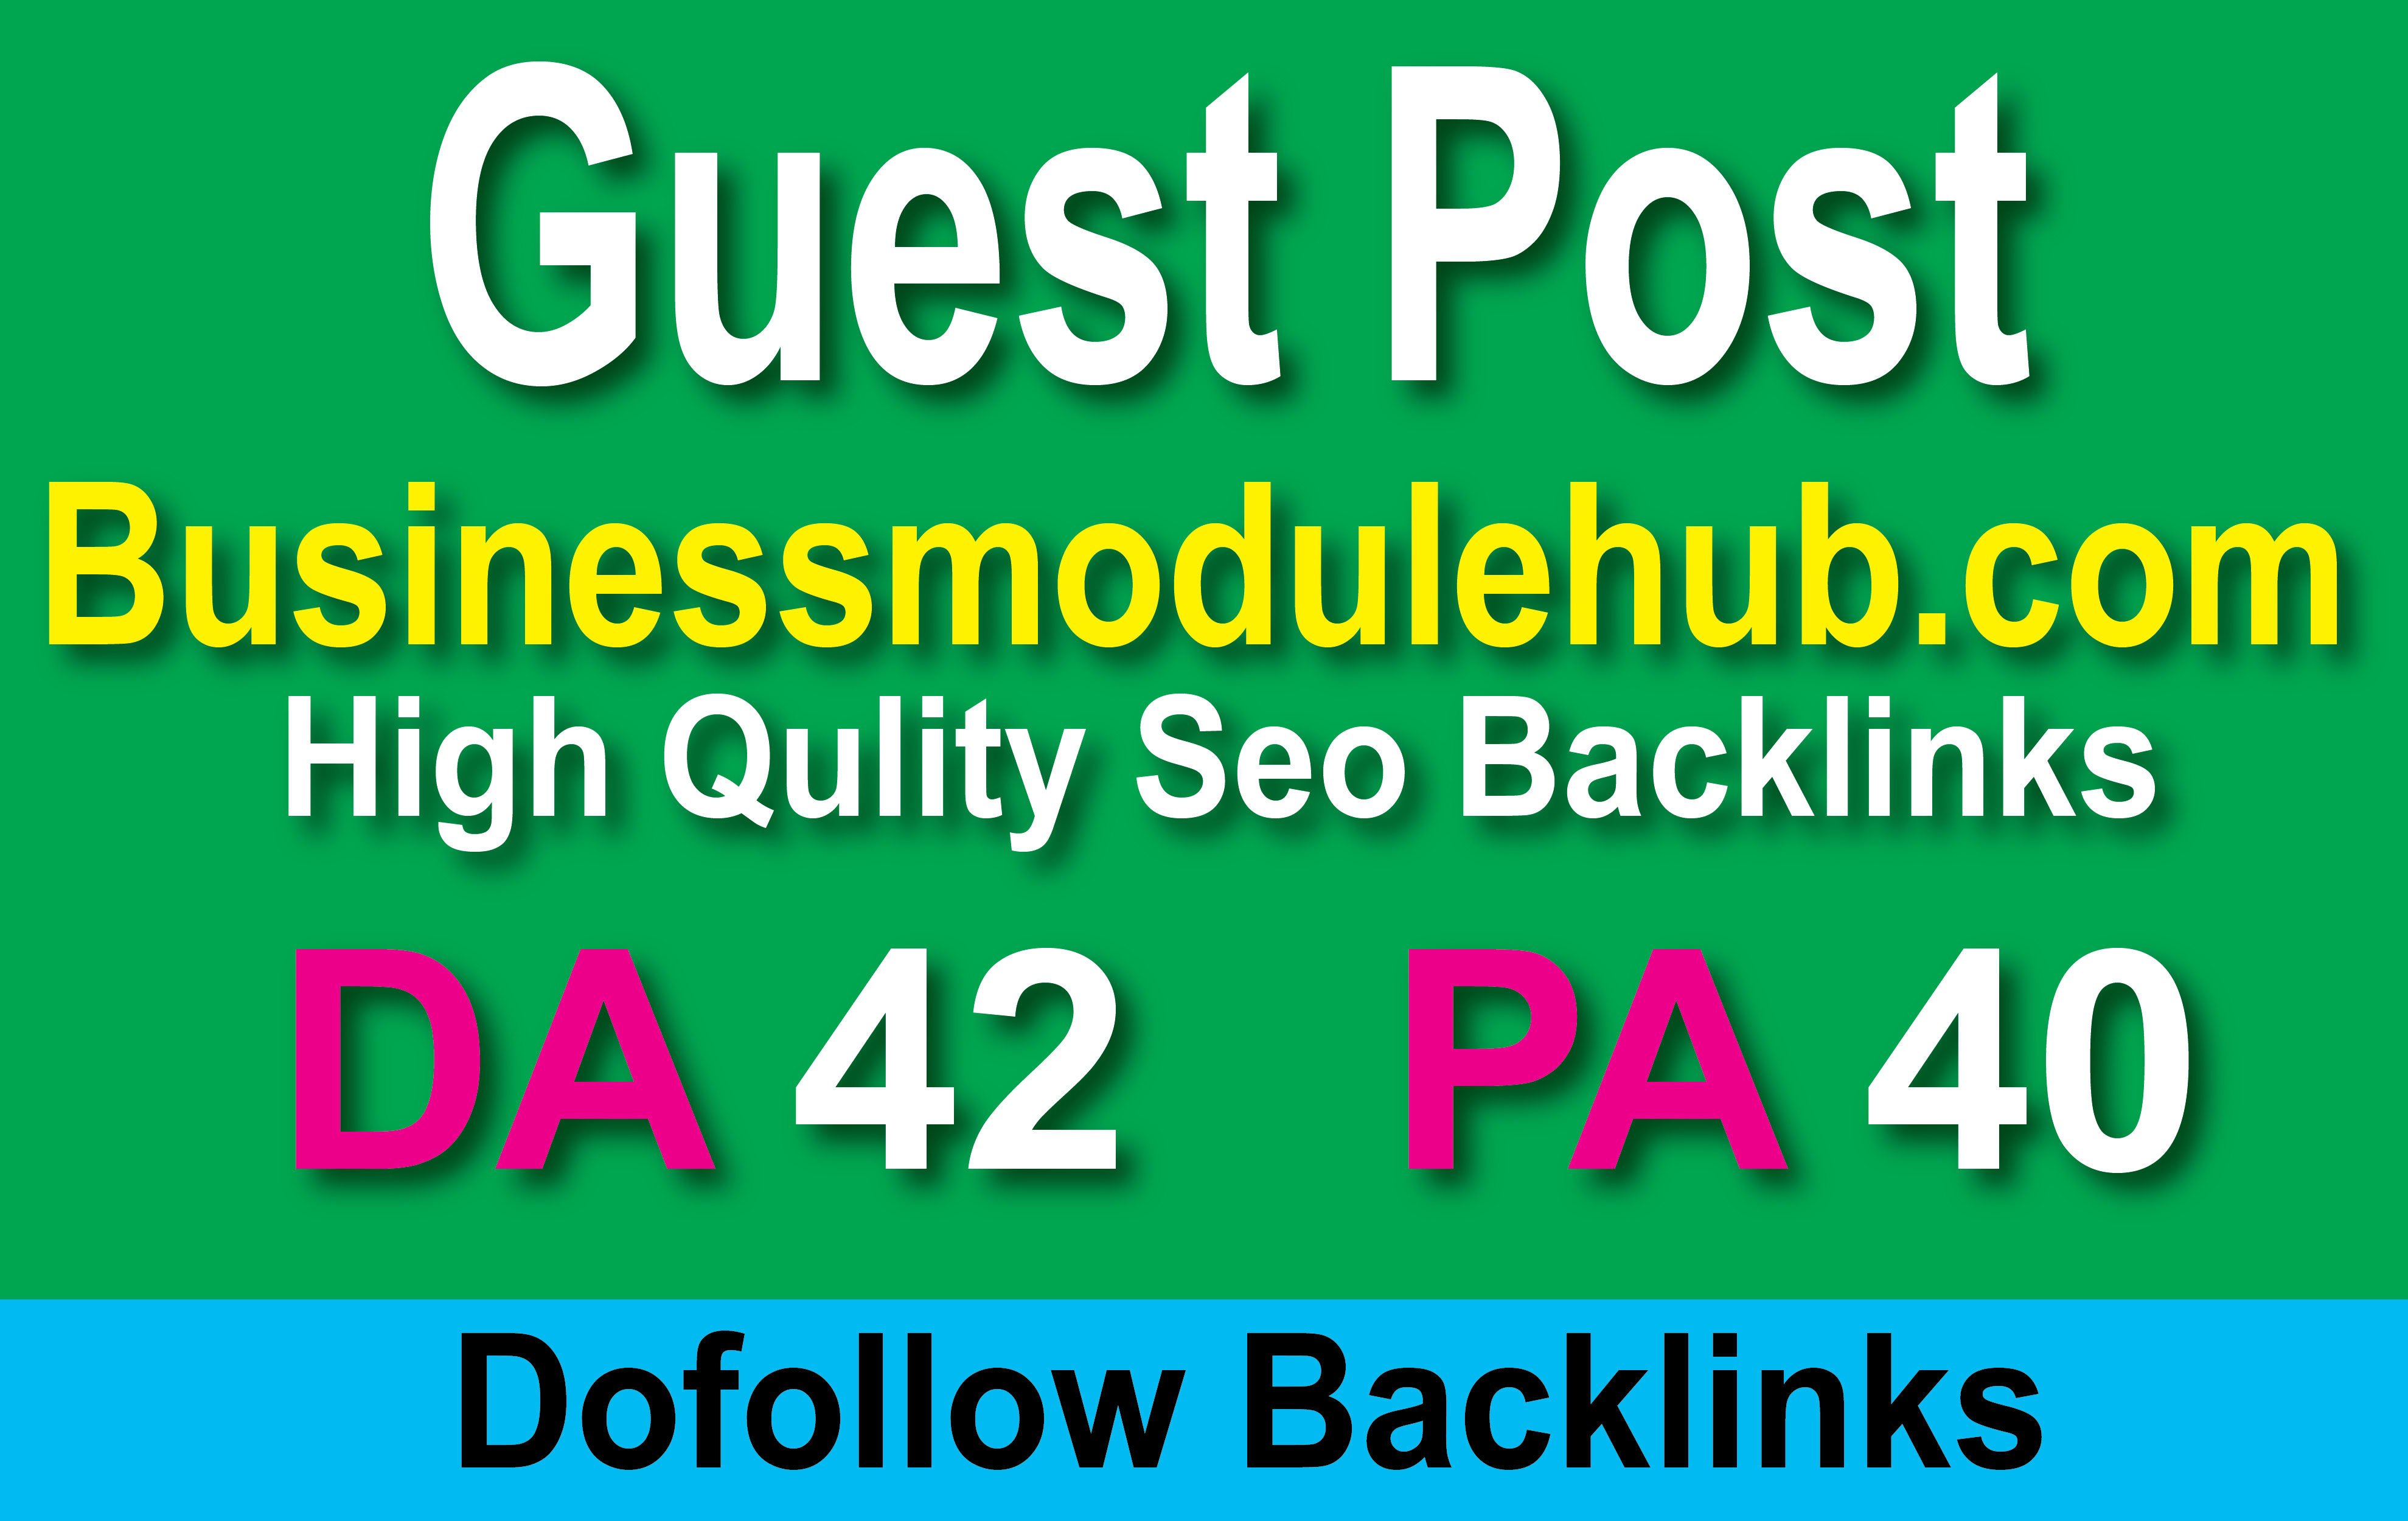 I will write & publish 10 guest post on business module hub with dofollow backlinks